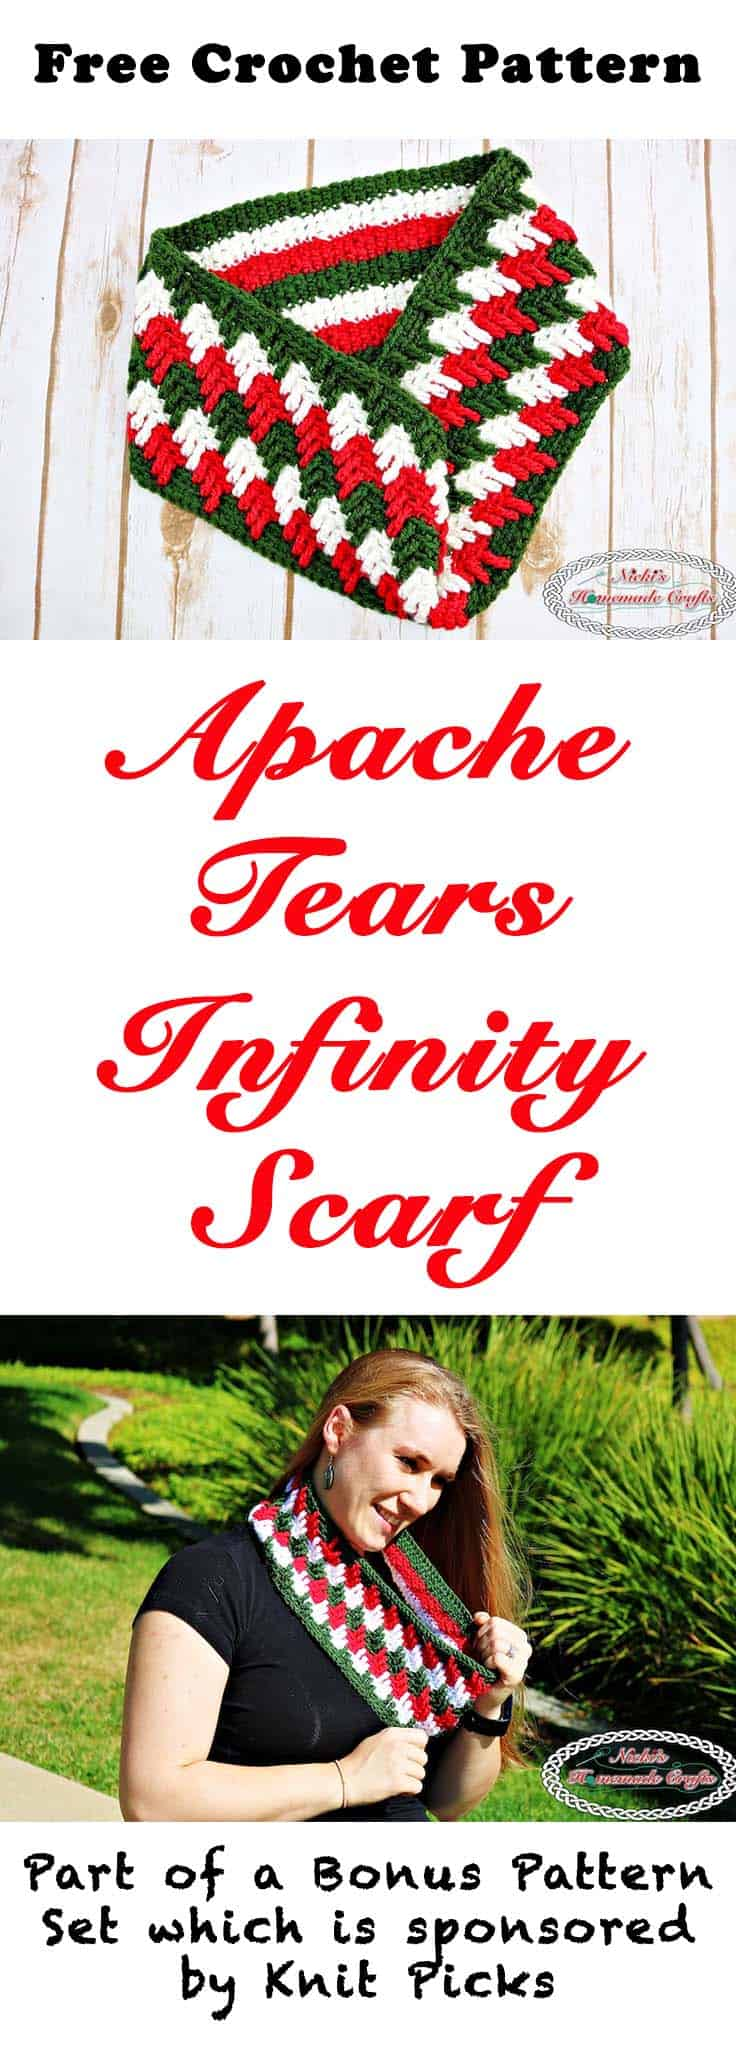 Apache Tears Infinity Scarf - Free Crochet Pattern by Nicki's Homemade Crafts #crochet #crochetalong #knitpicks #freecrochetpattern #infinityscarf #apachetears